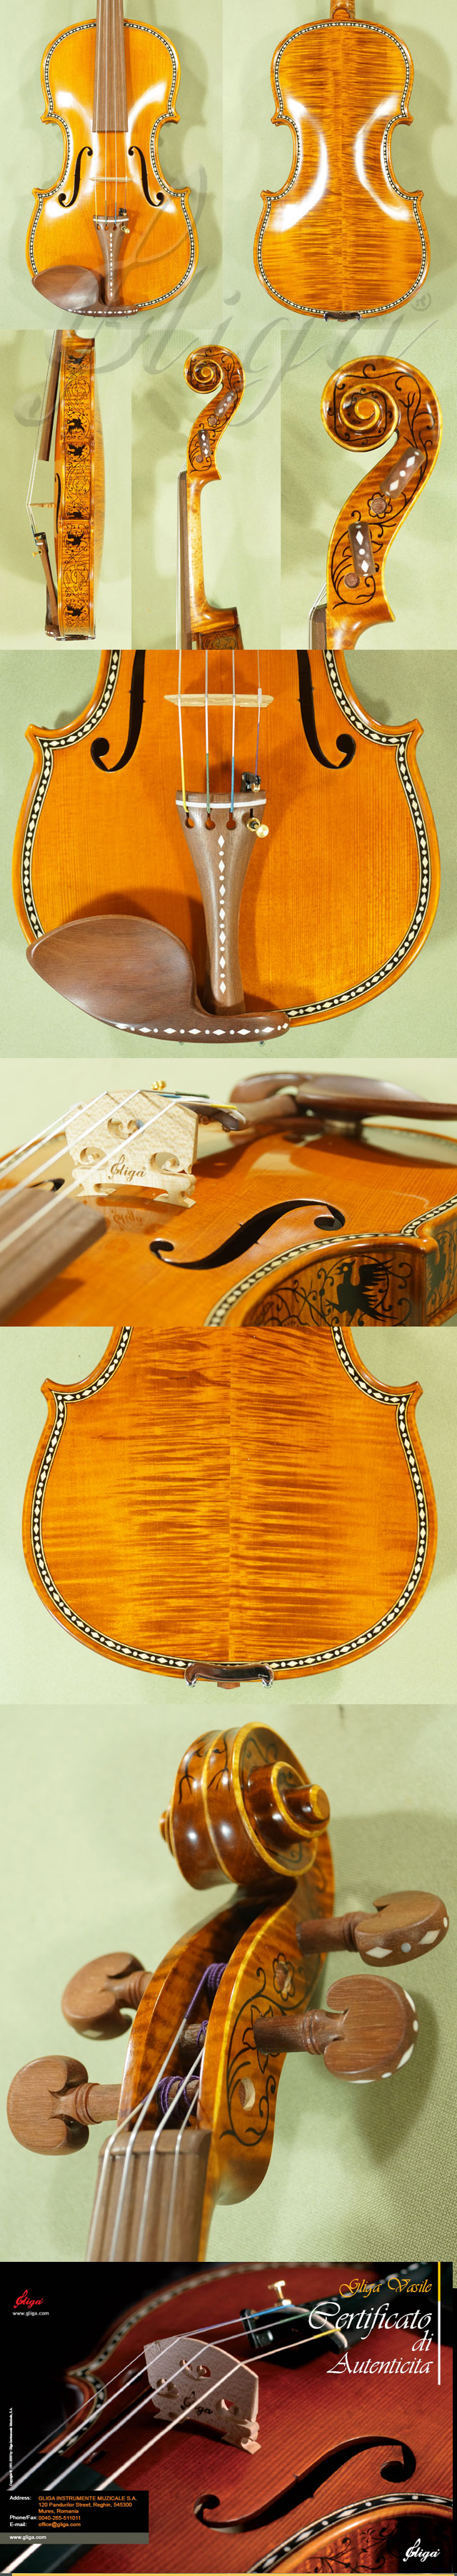 4/4 MAESTRO VASILE GLIGA Rare White Bone and Ebony Inlaid Purfling Violin